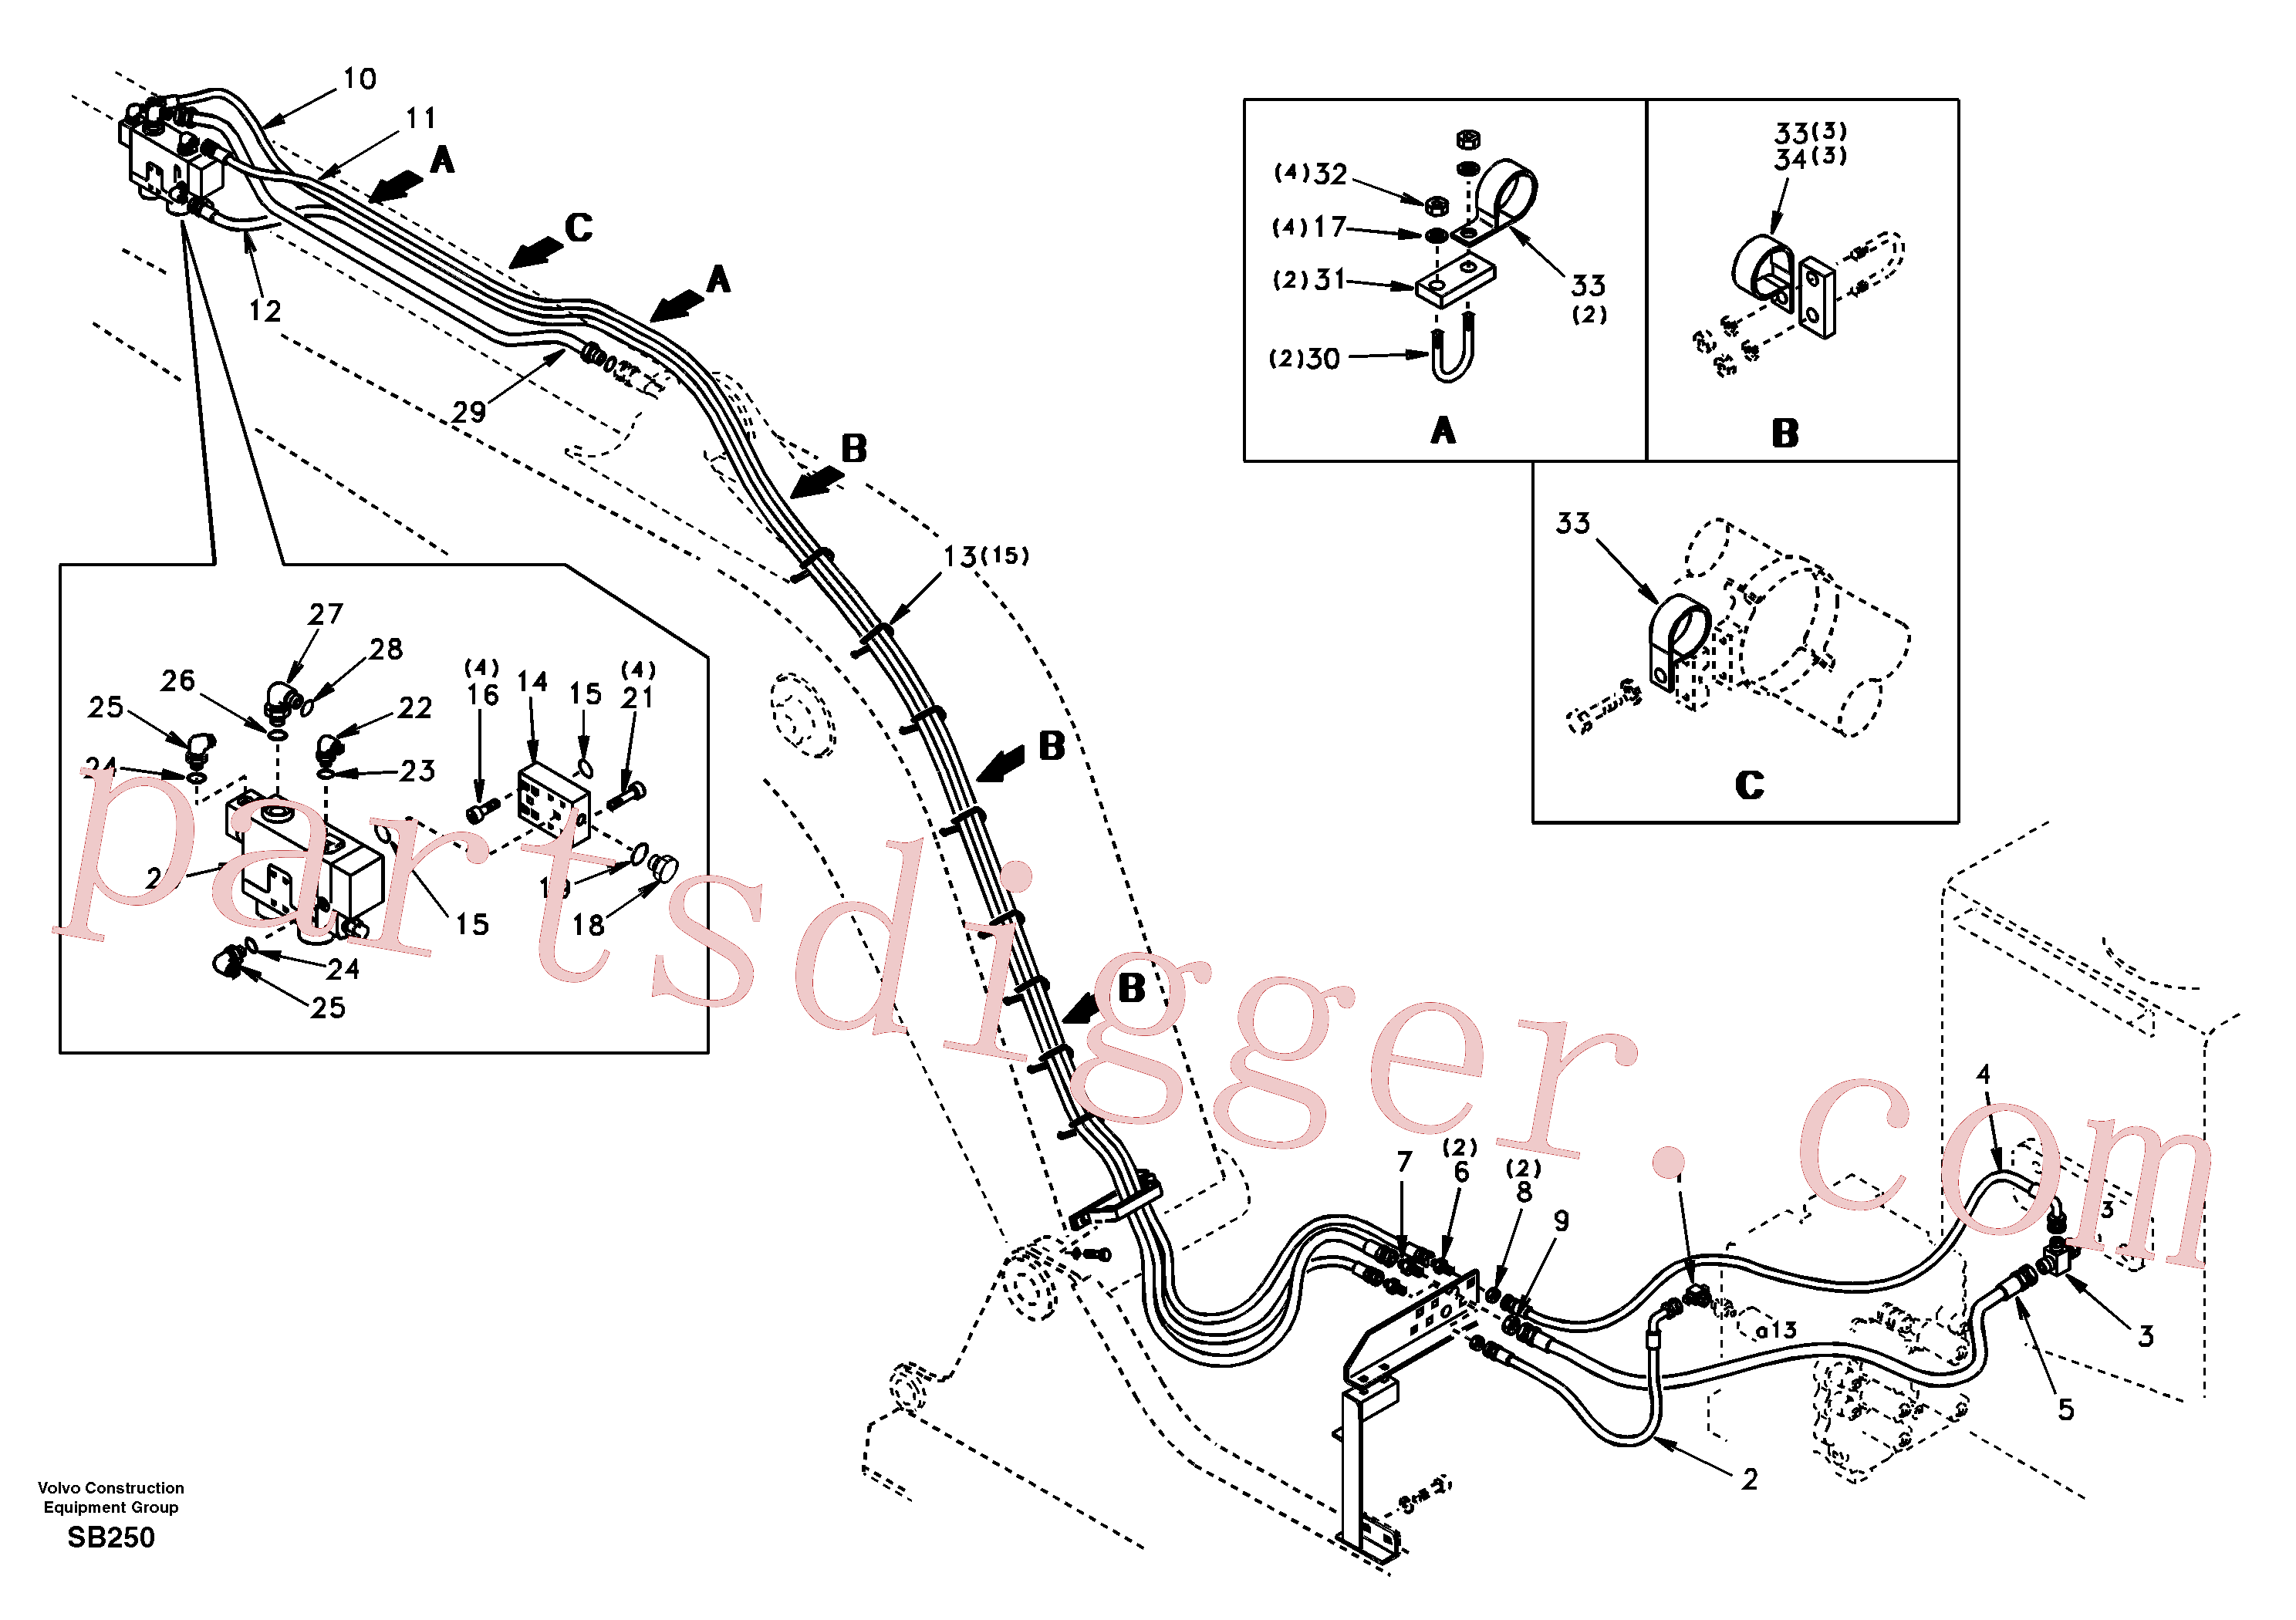 SA9411-96100 for Volvo Working hydraulic, dipper arm rupture(SB250 assembly)